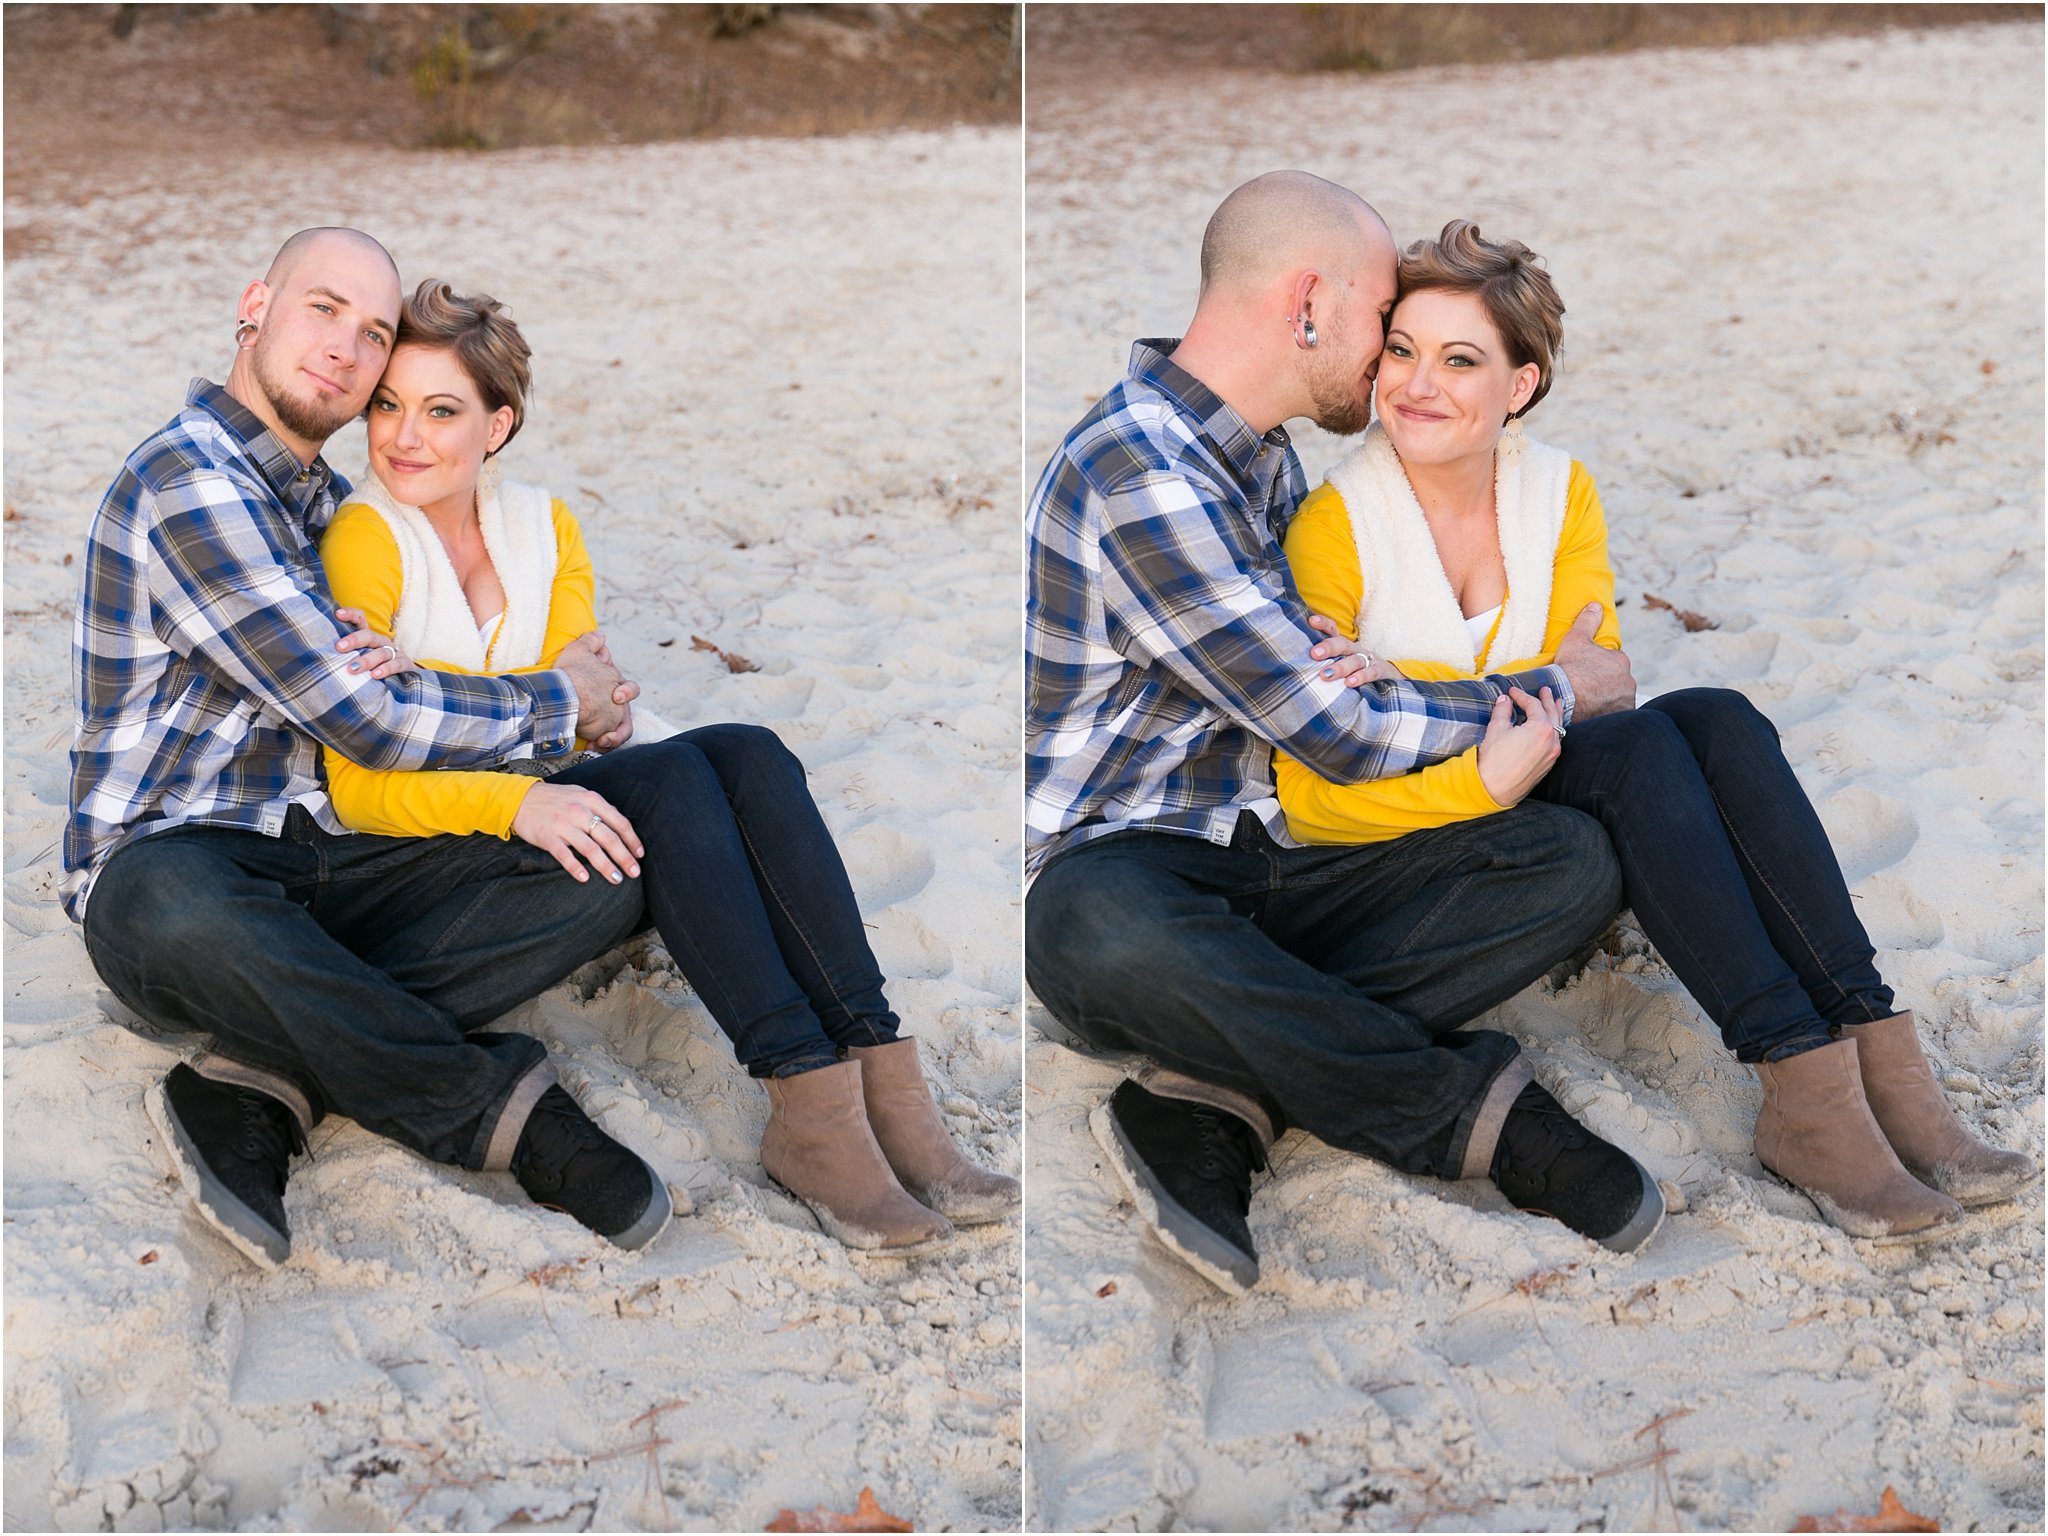 jessica_ryan_photography_virginia_beach_virginia_engagements_engagement_photographer_candid_1062